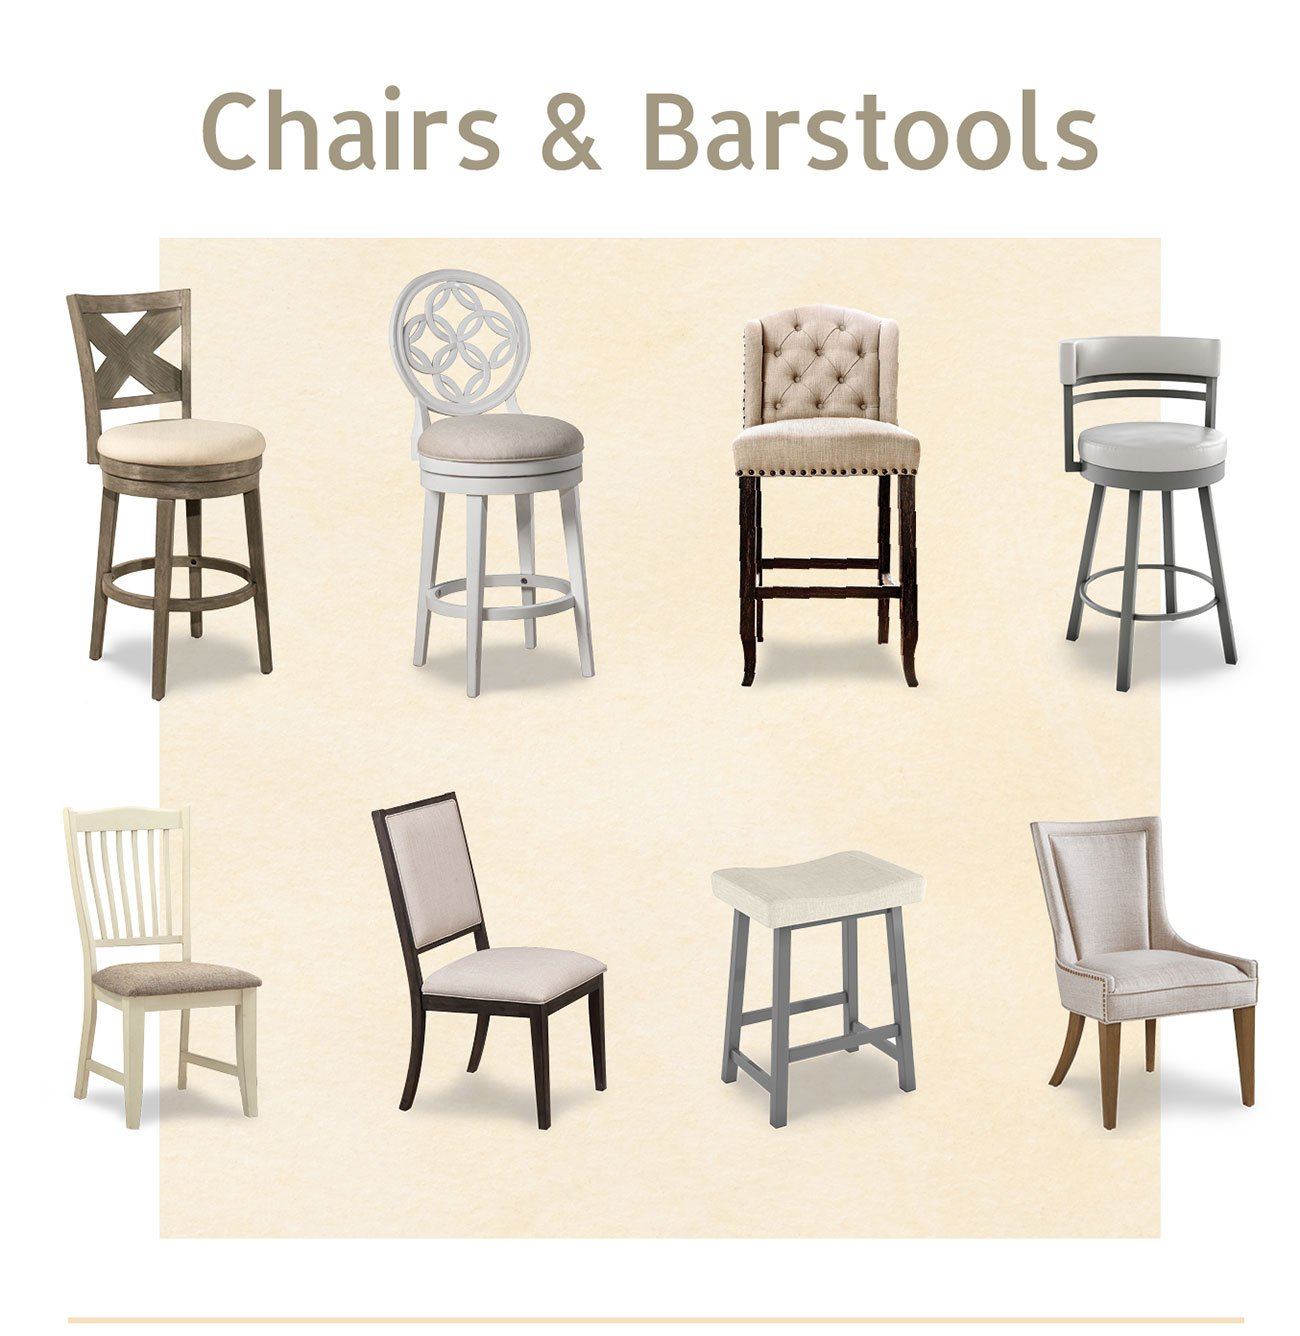 Shop-chairs-and-barstools